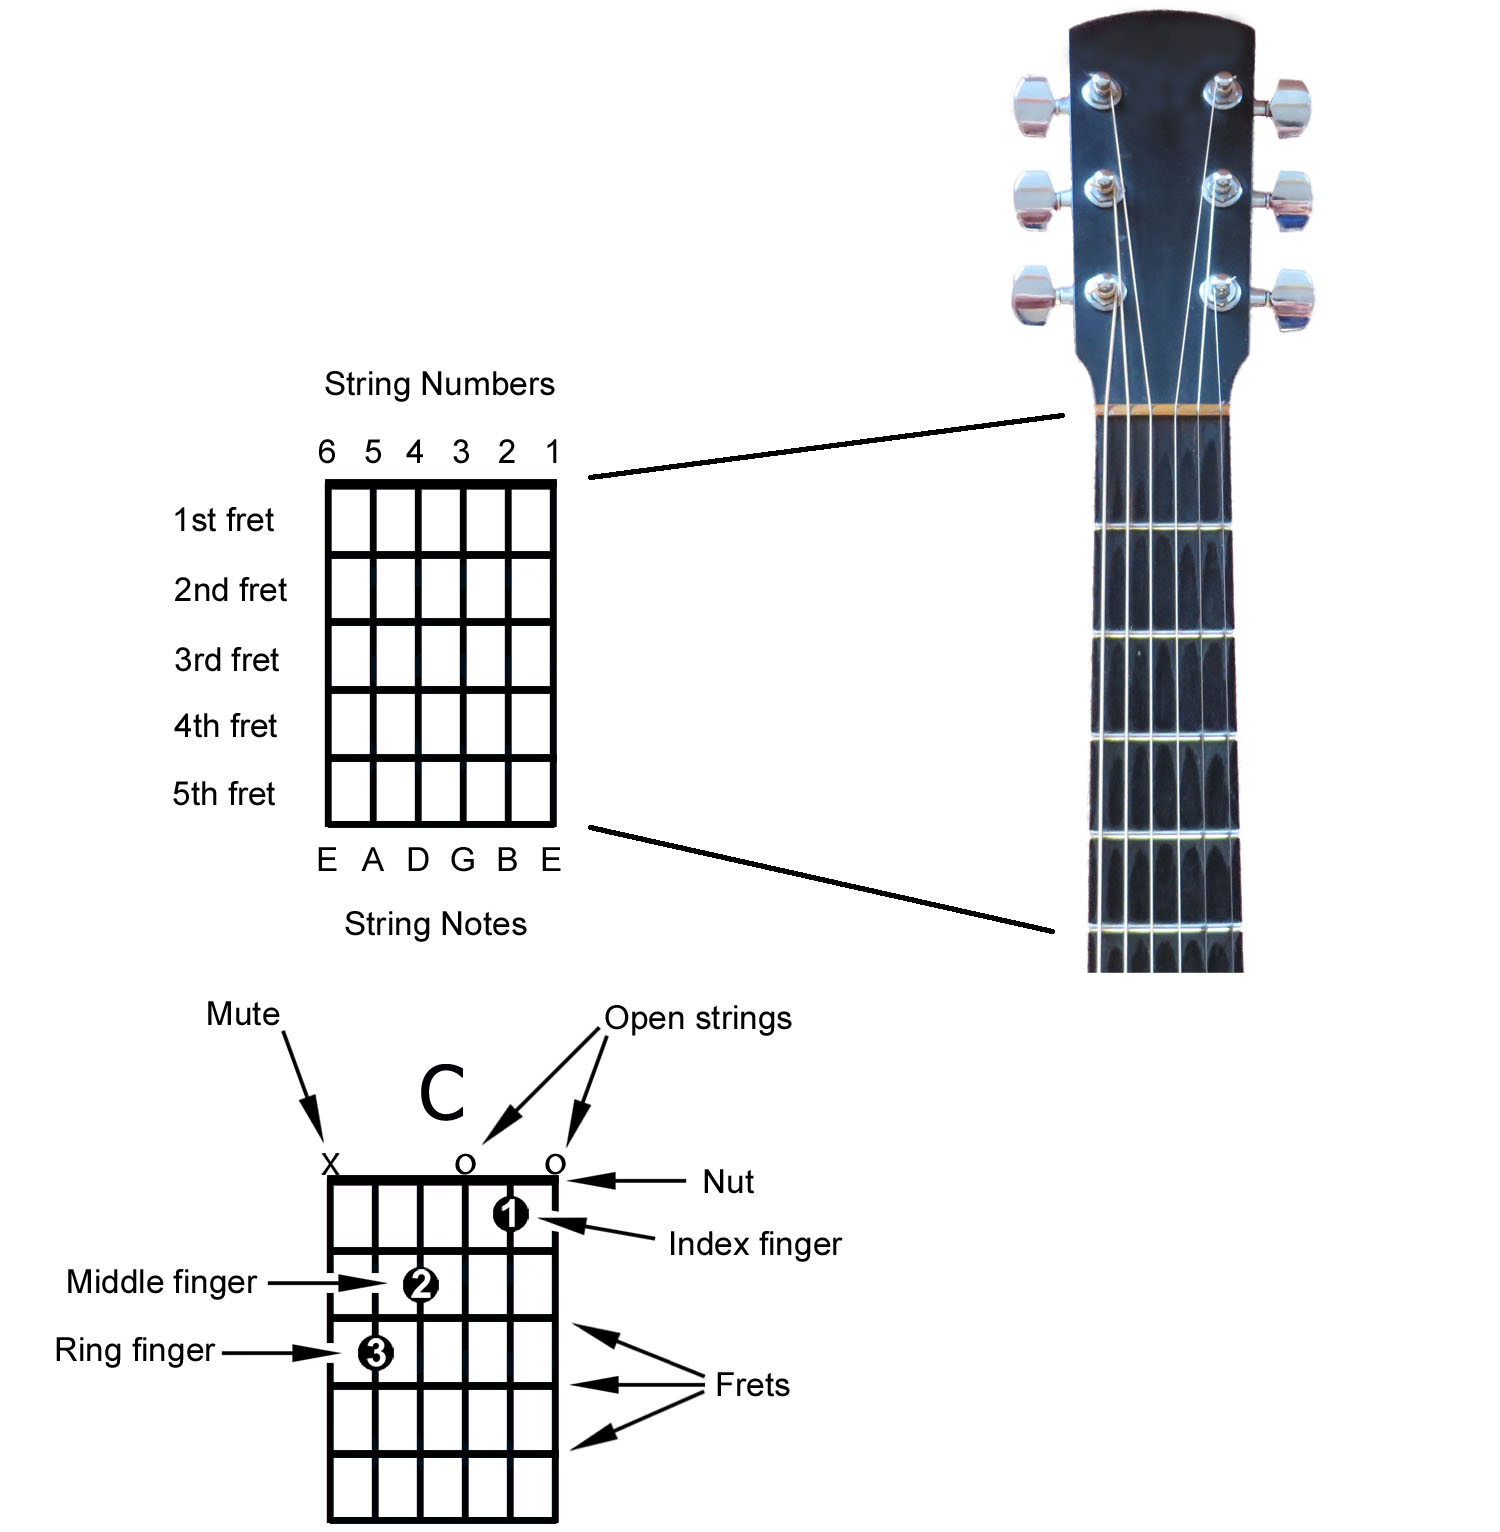 How To Read A Chord Diagram Yourguitarchords